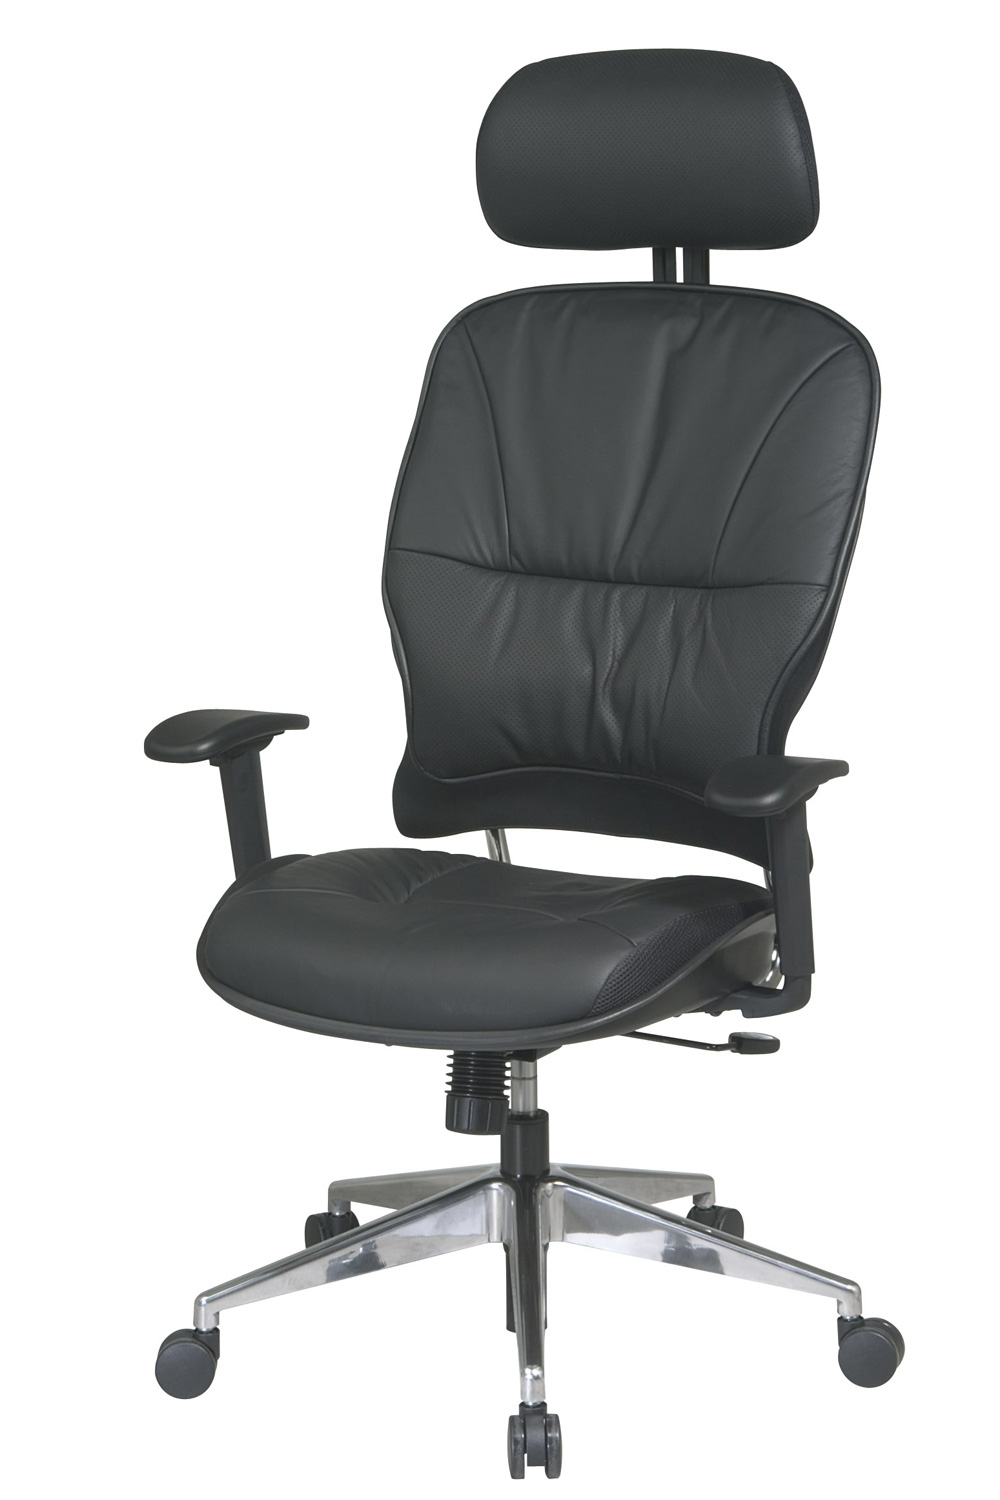 32 44P918Phl Office Star – Executive Leather Office Chair With With Well Known Executive Office Chairs With Headrest (View 1 of 20)